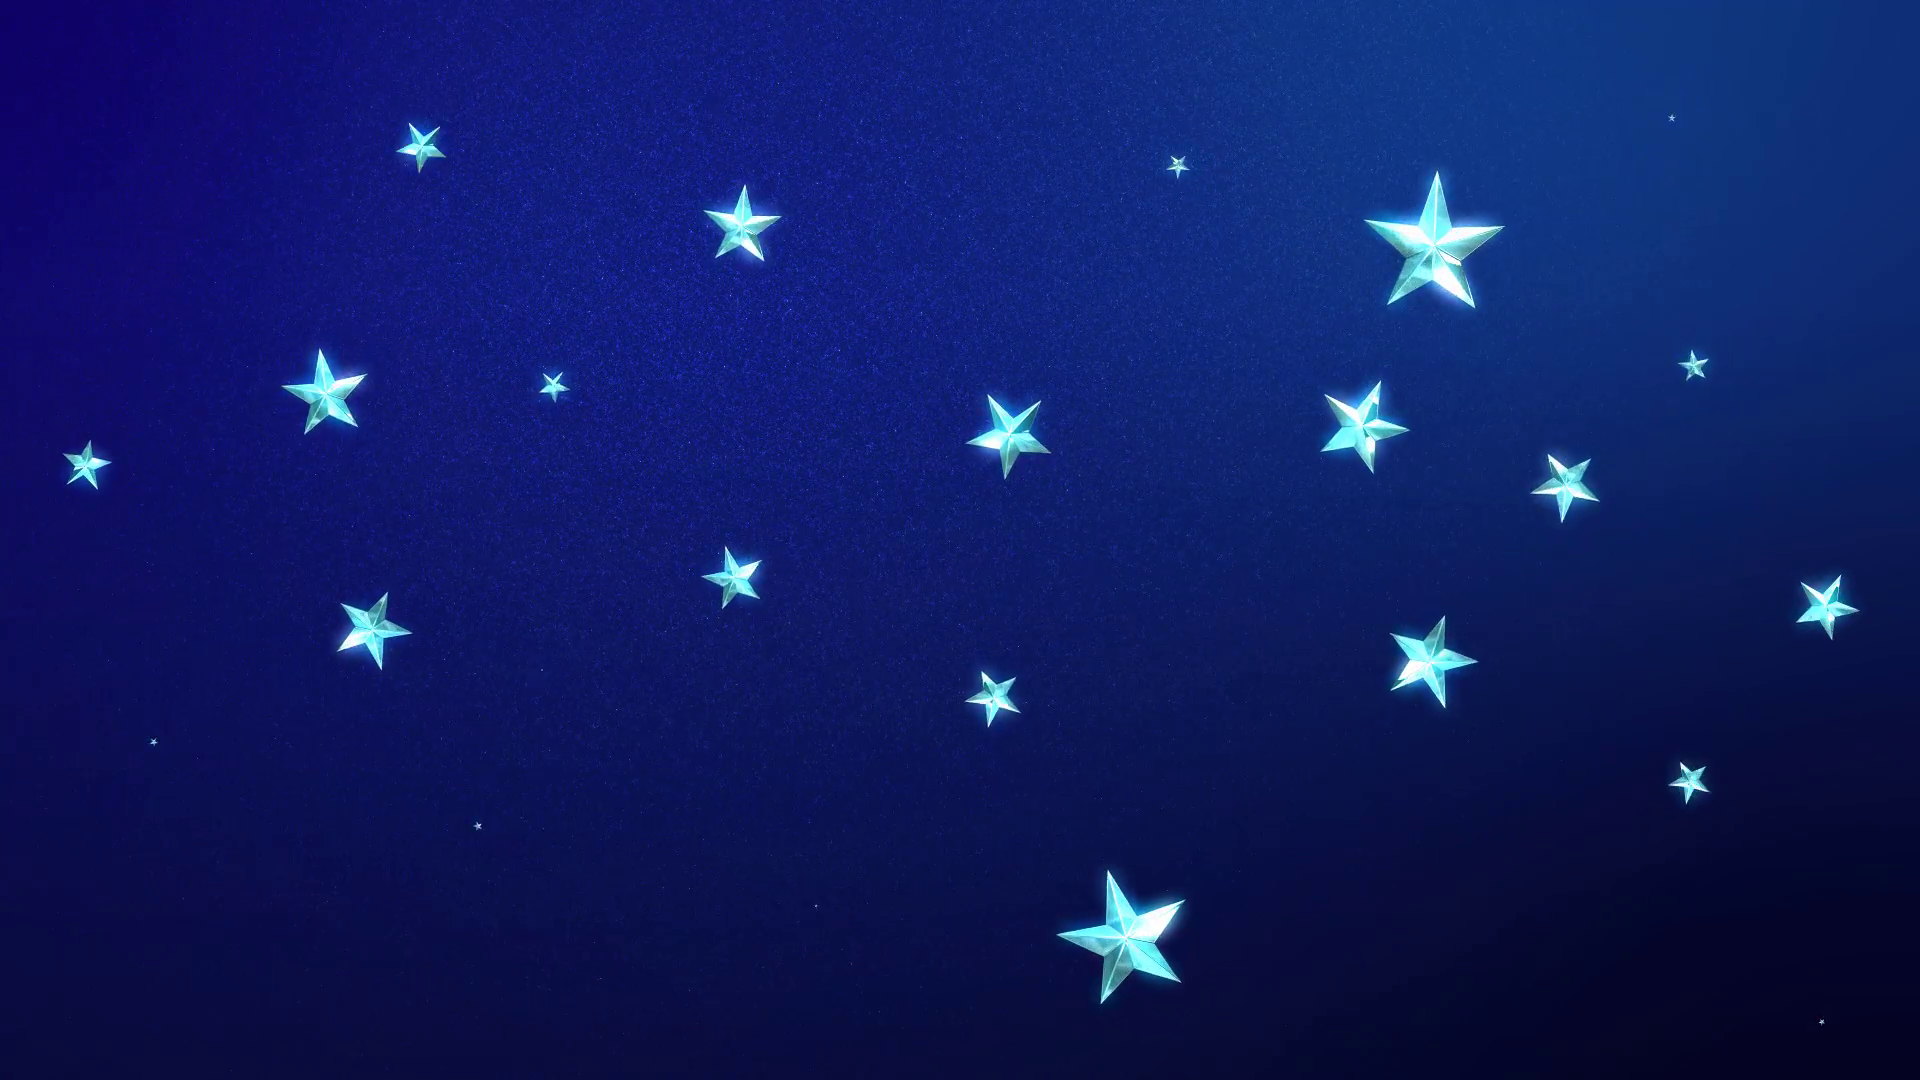 Looping Animation of Twinkling Stars on a Midnight Blue 1920x1080